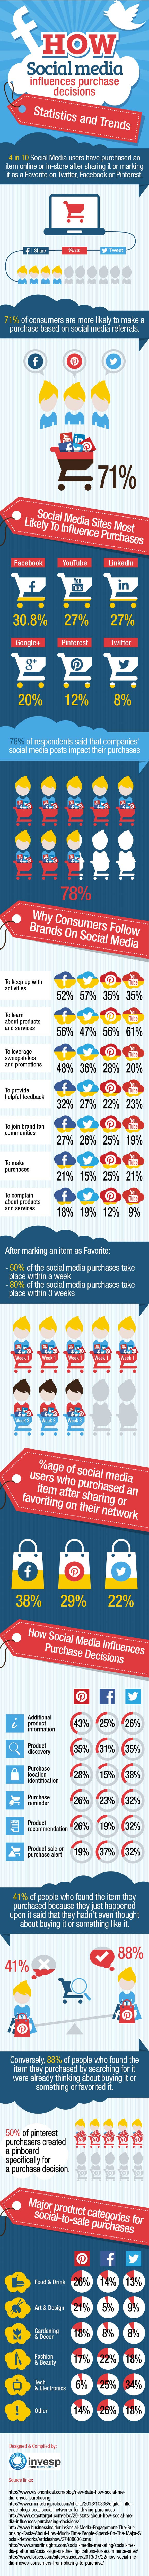 30+ Reason How Social Media Influence Purchasing Decision - infographic